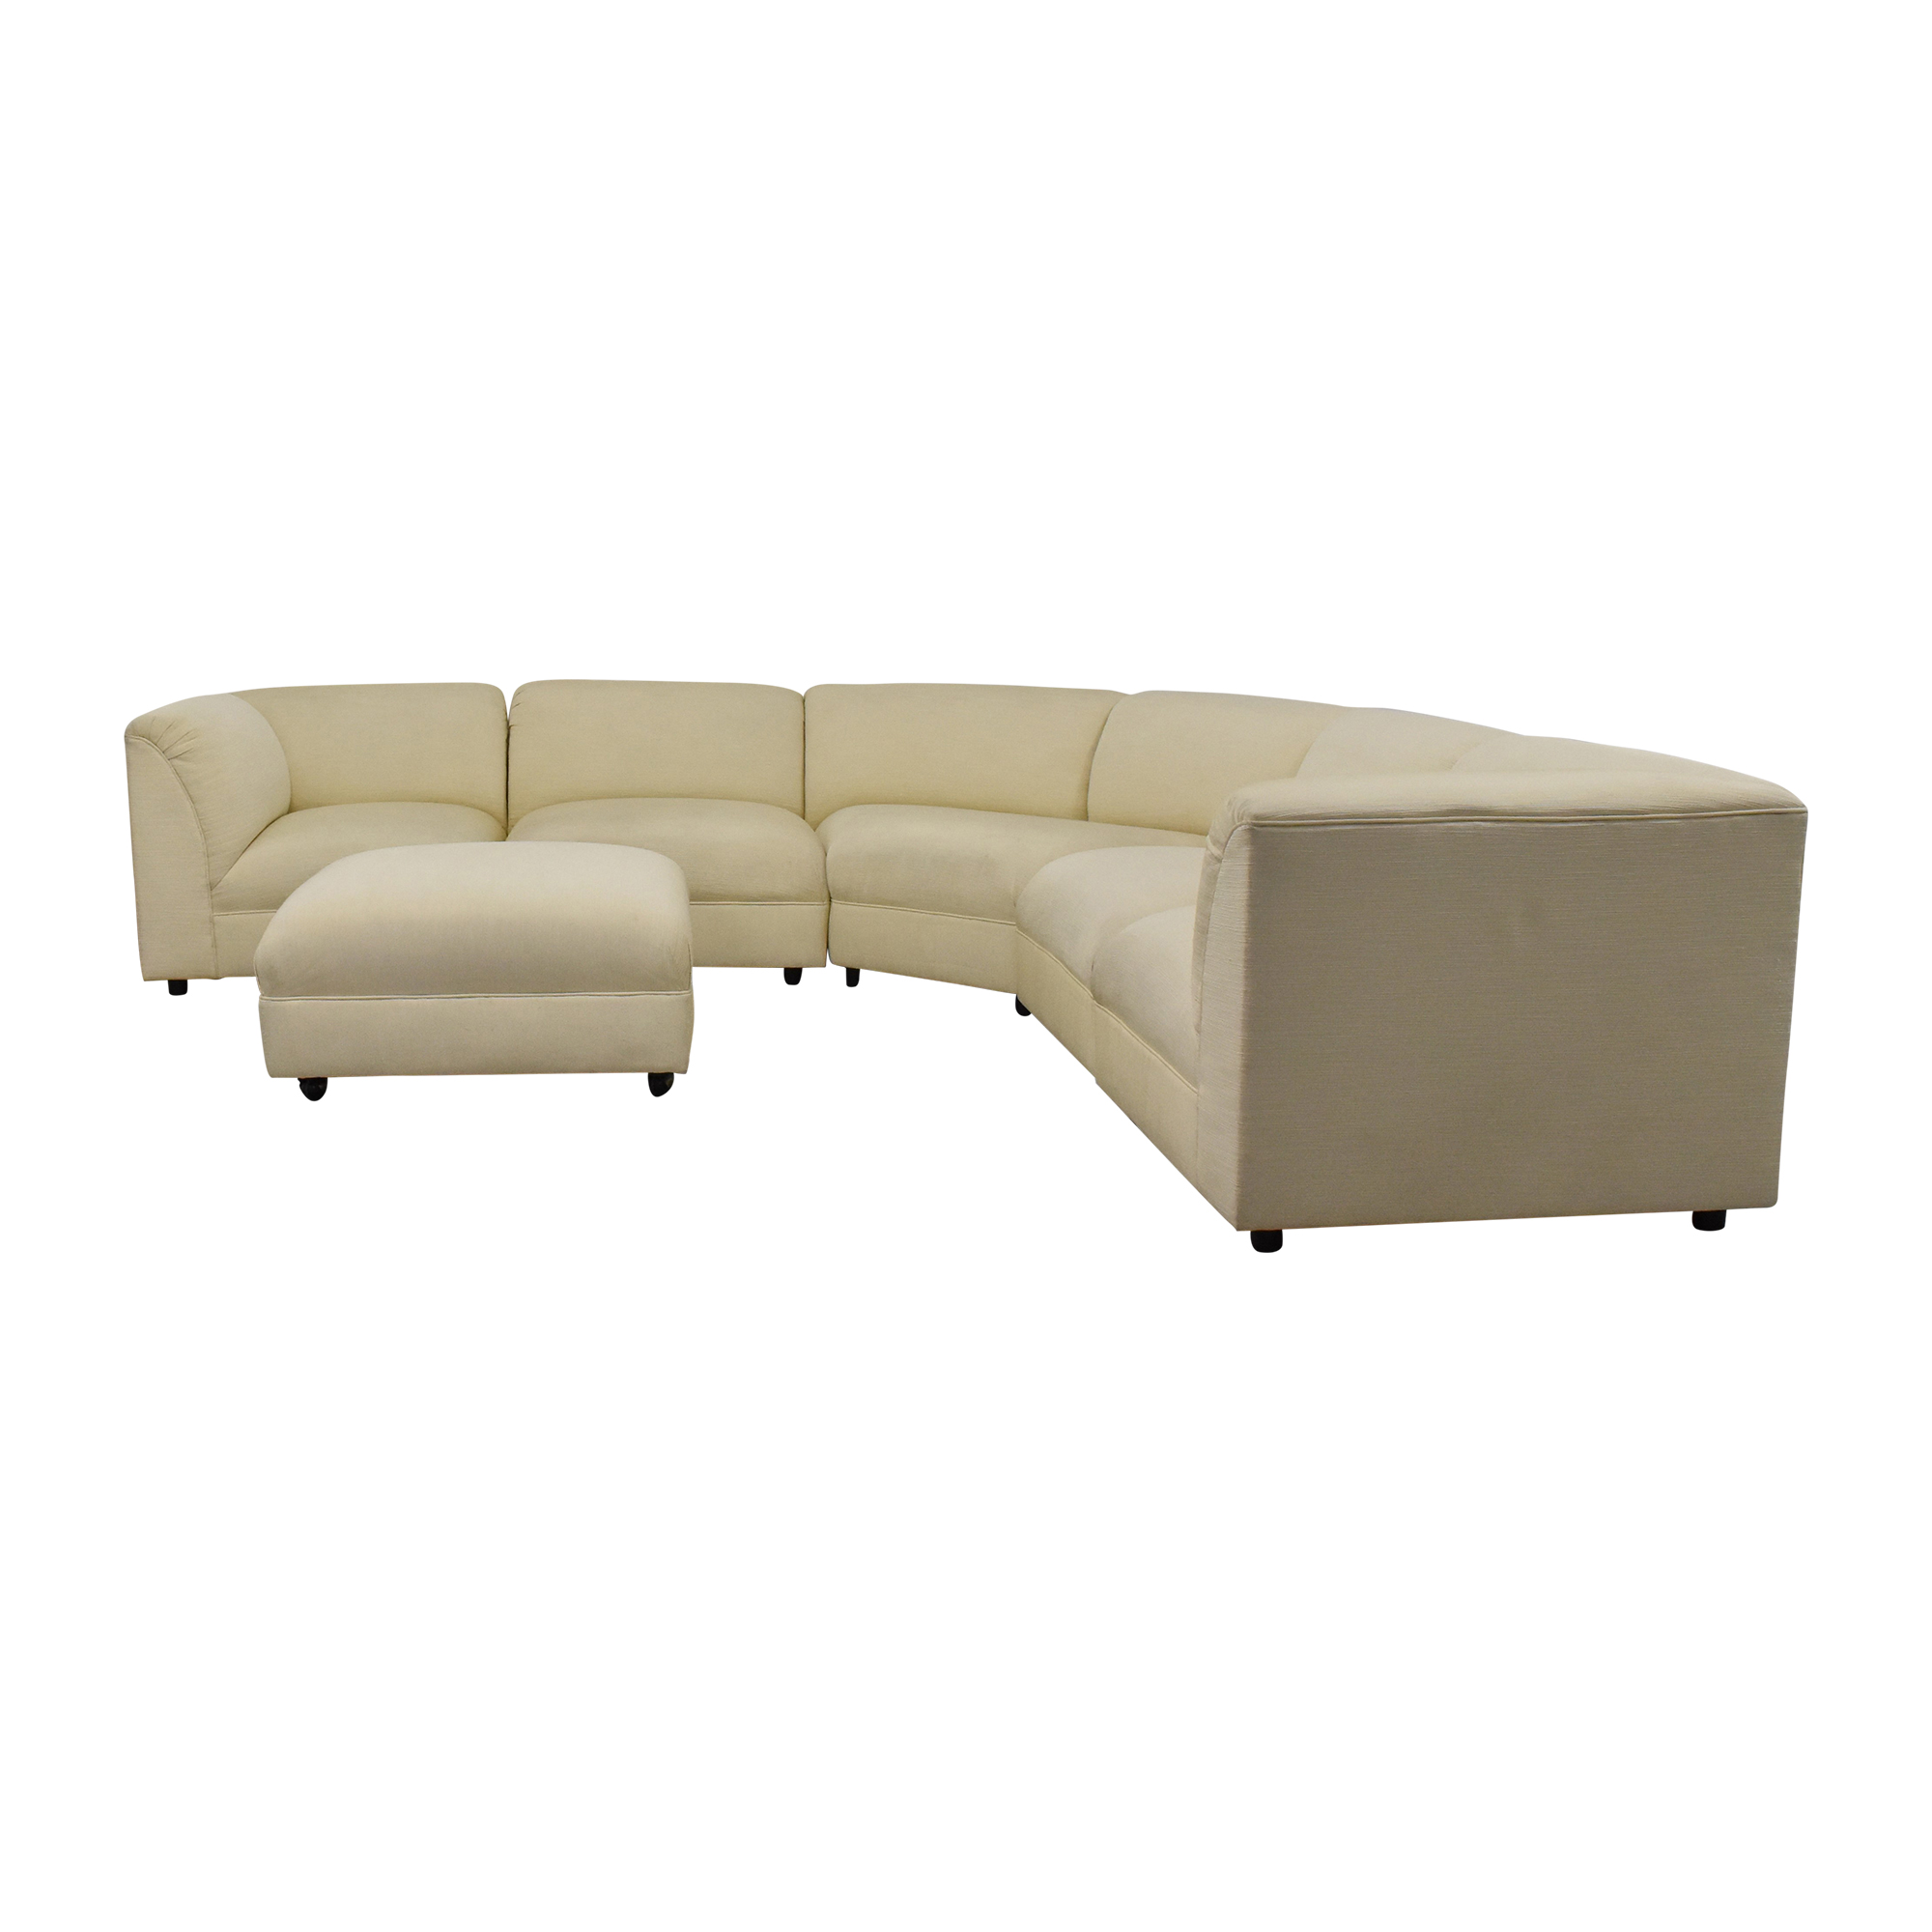 buy Maurice Villency Five Piece Sectional Sofa with Ottoman Maurice Villency Sofas